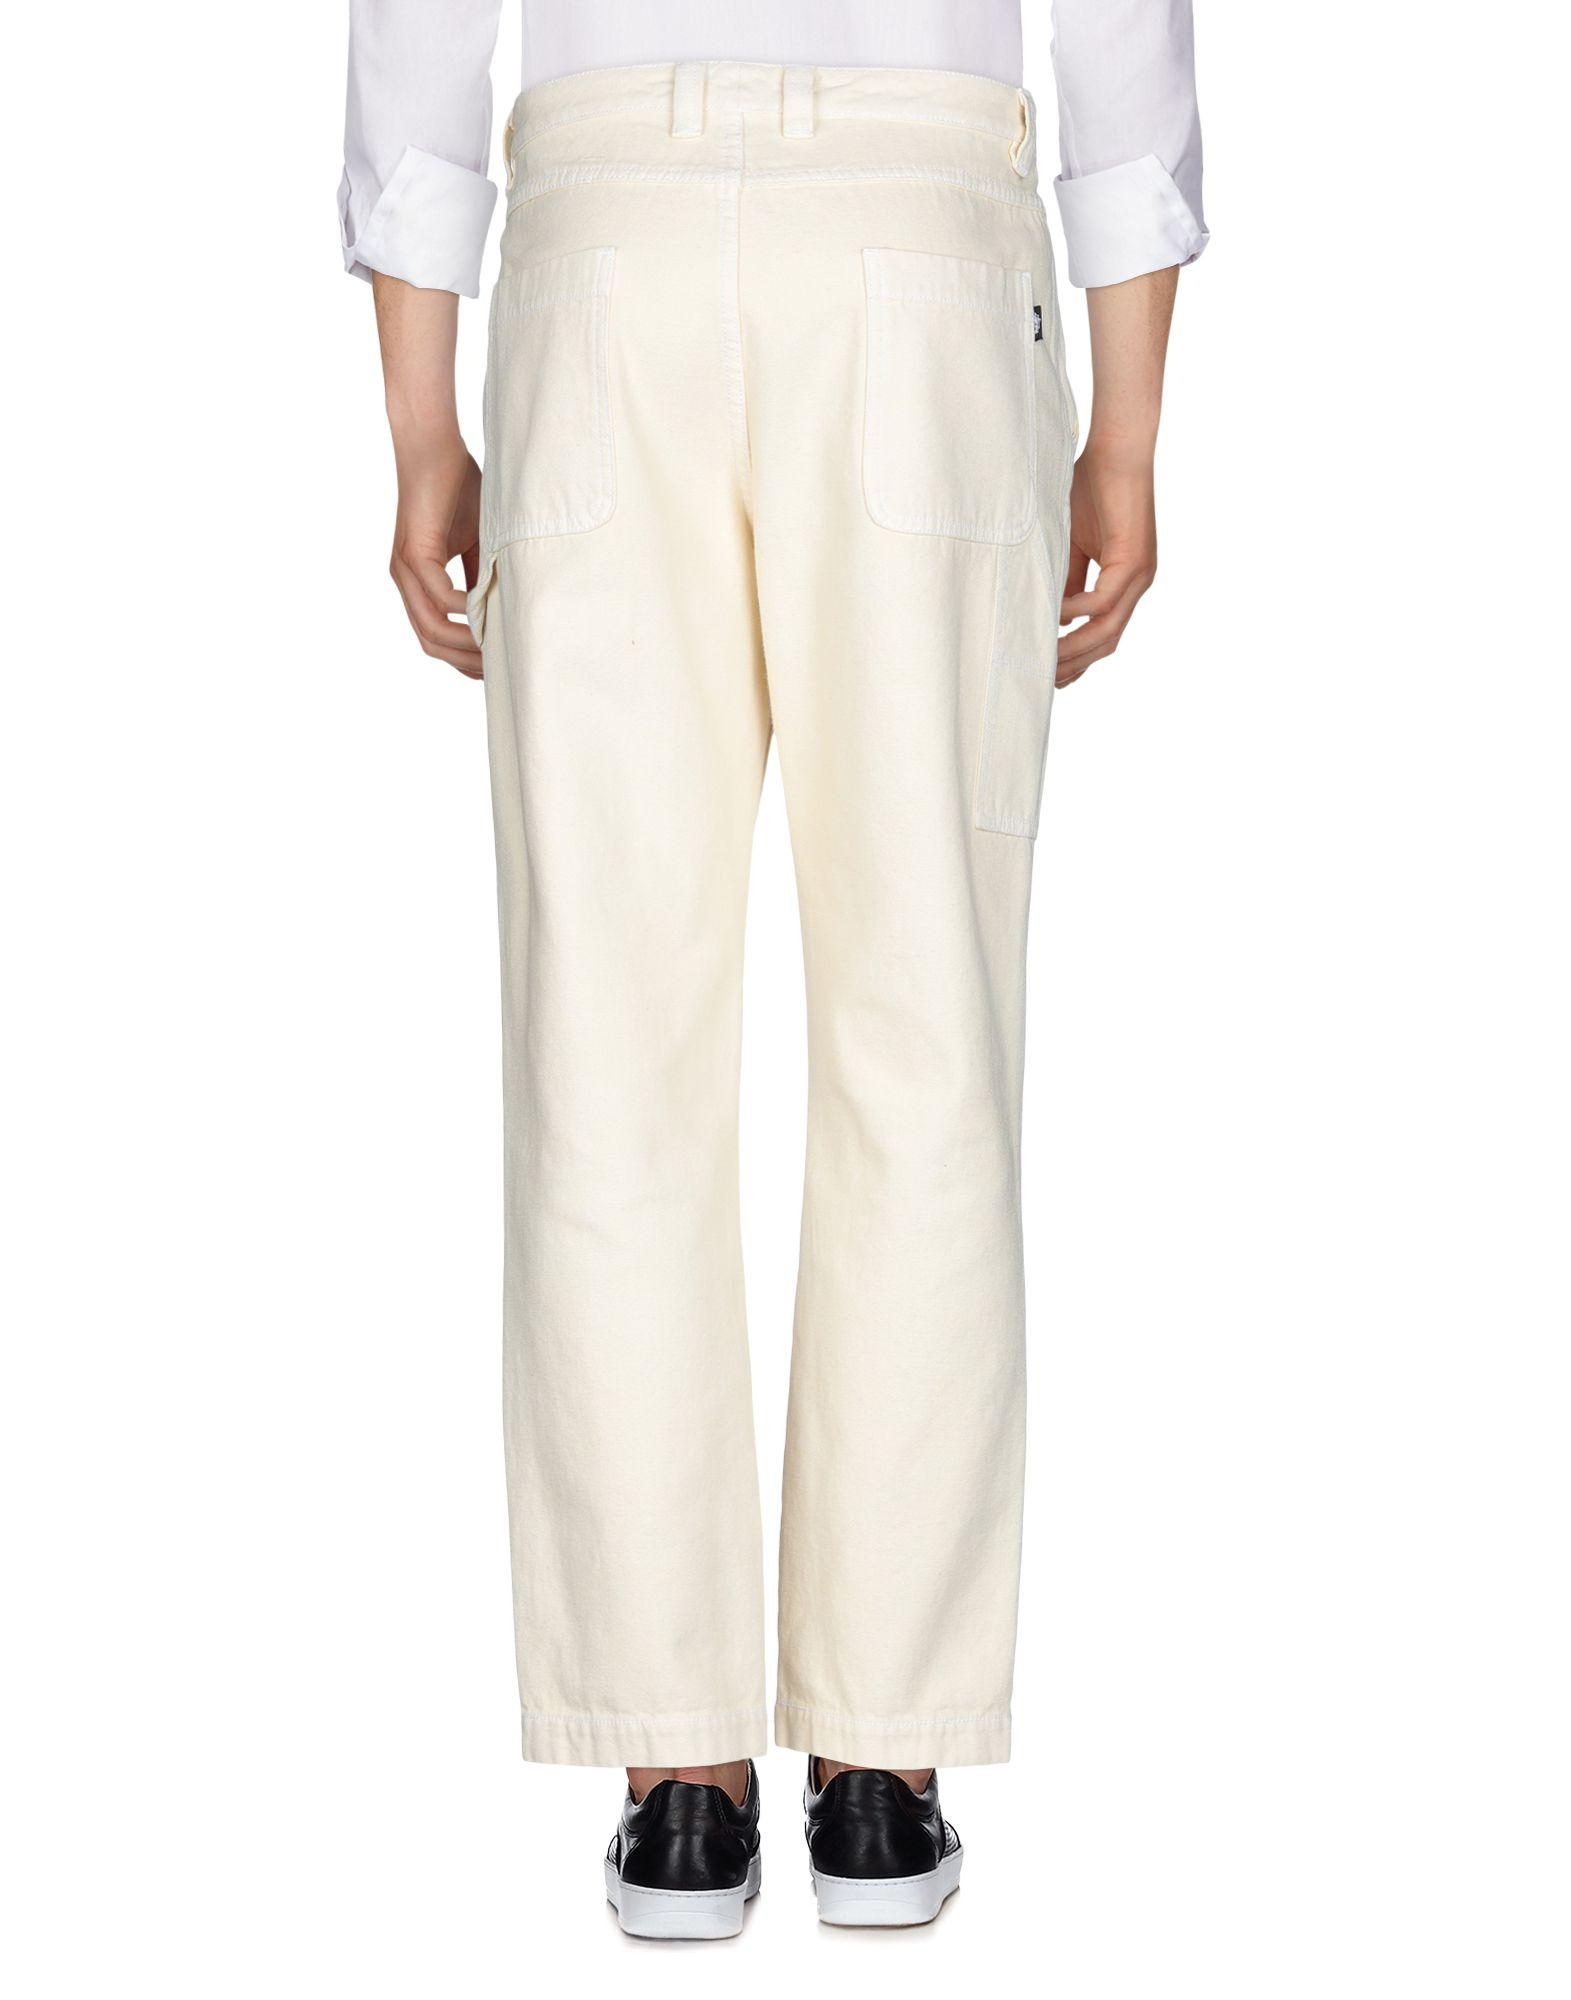 Stussy Canvas Casual Trouser in Ivory (White) for Men